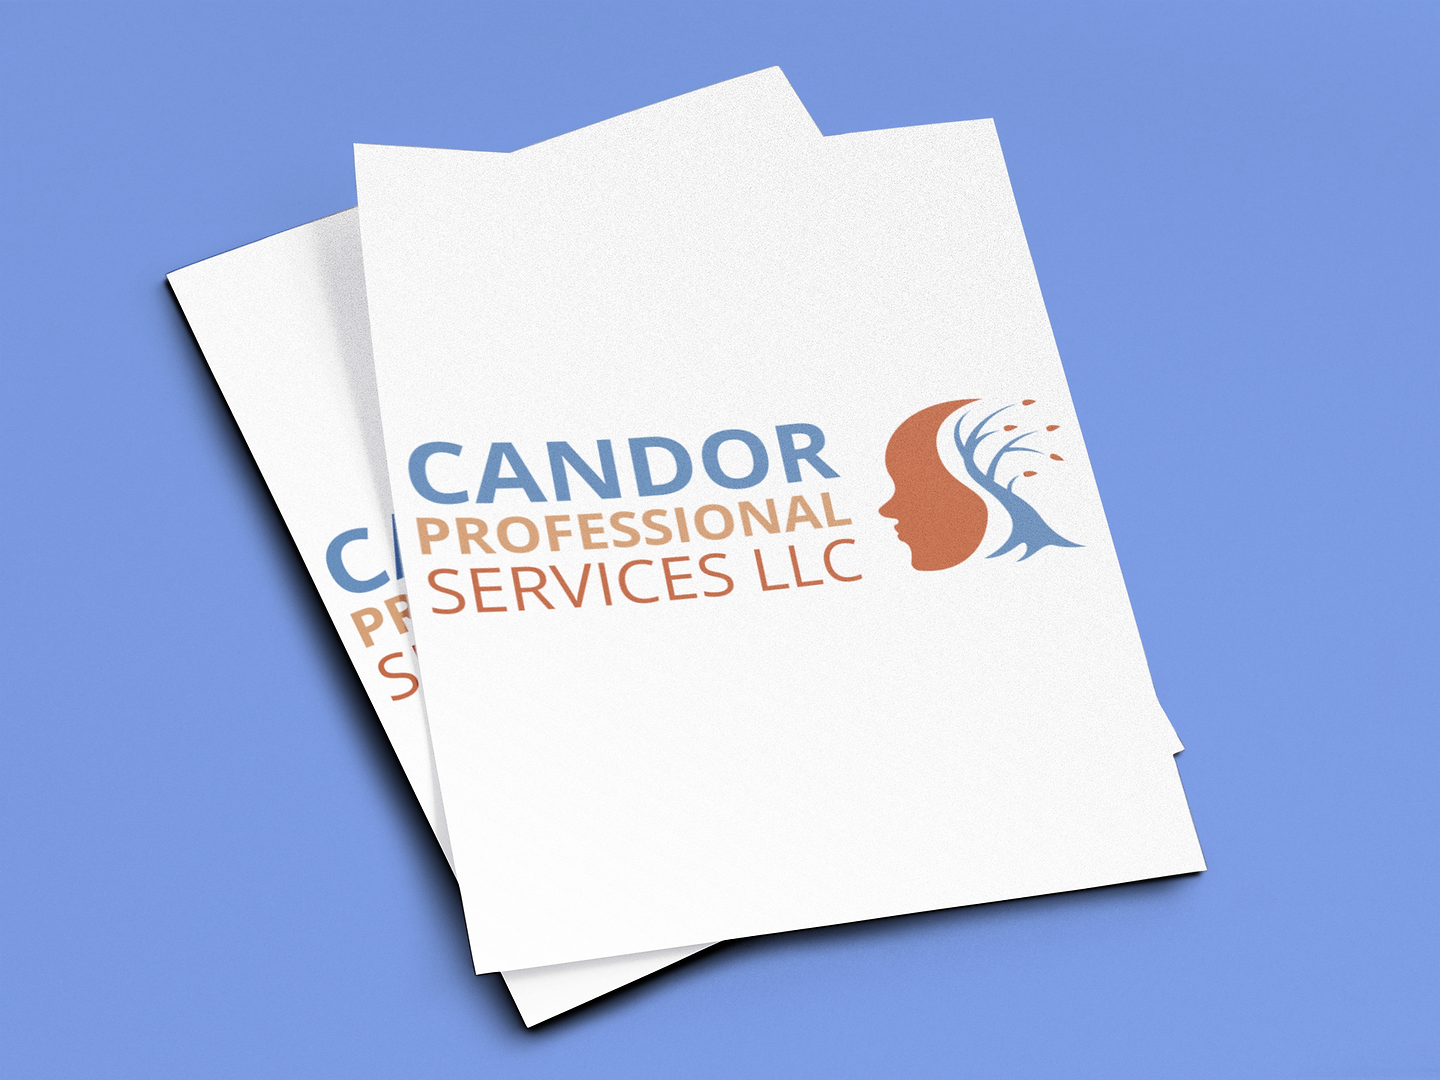 Candor Professional Services LLC